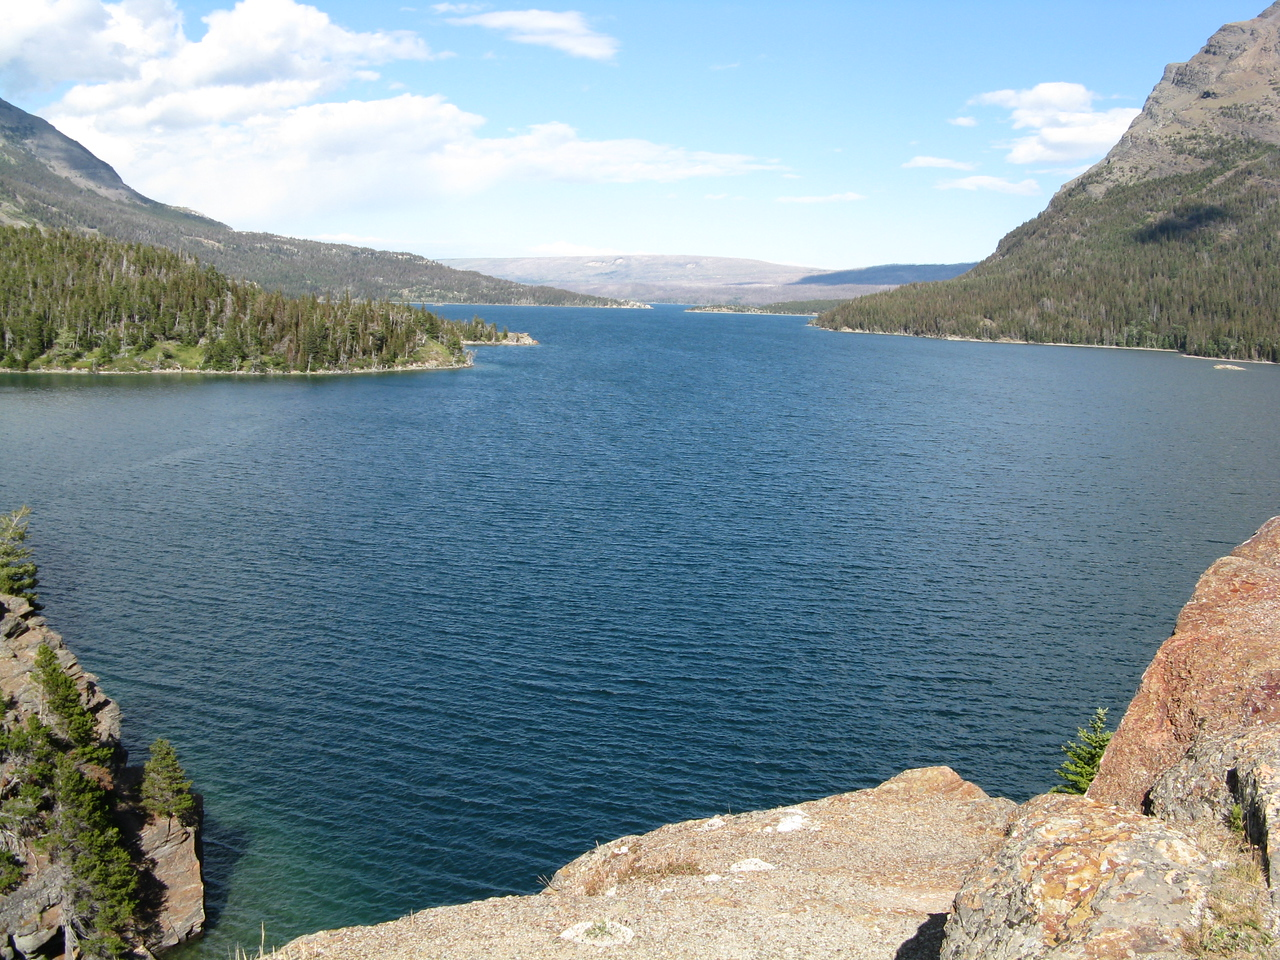 From Sun Point, we are looking eastward towards the outlet from Saint Mary Lake.